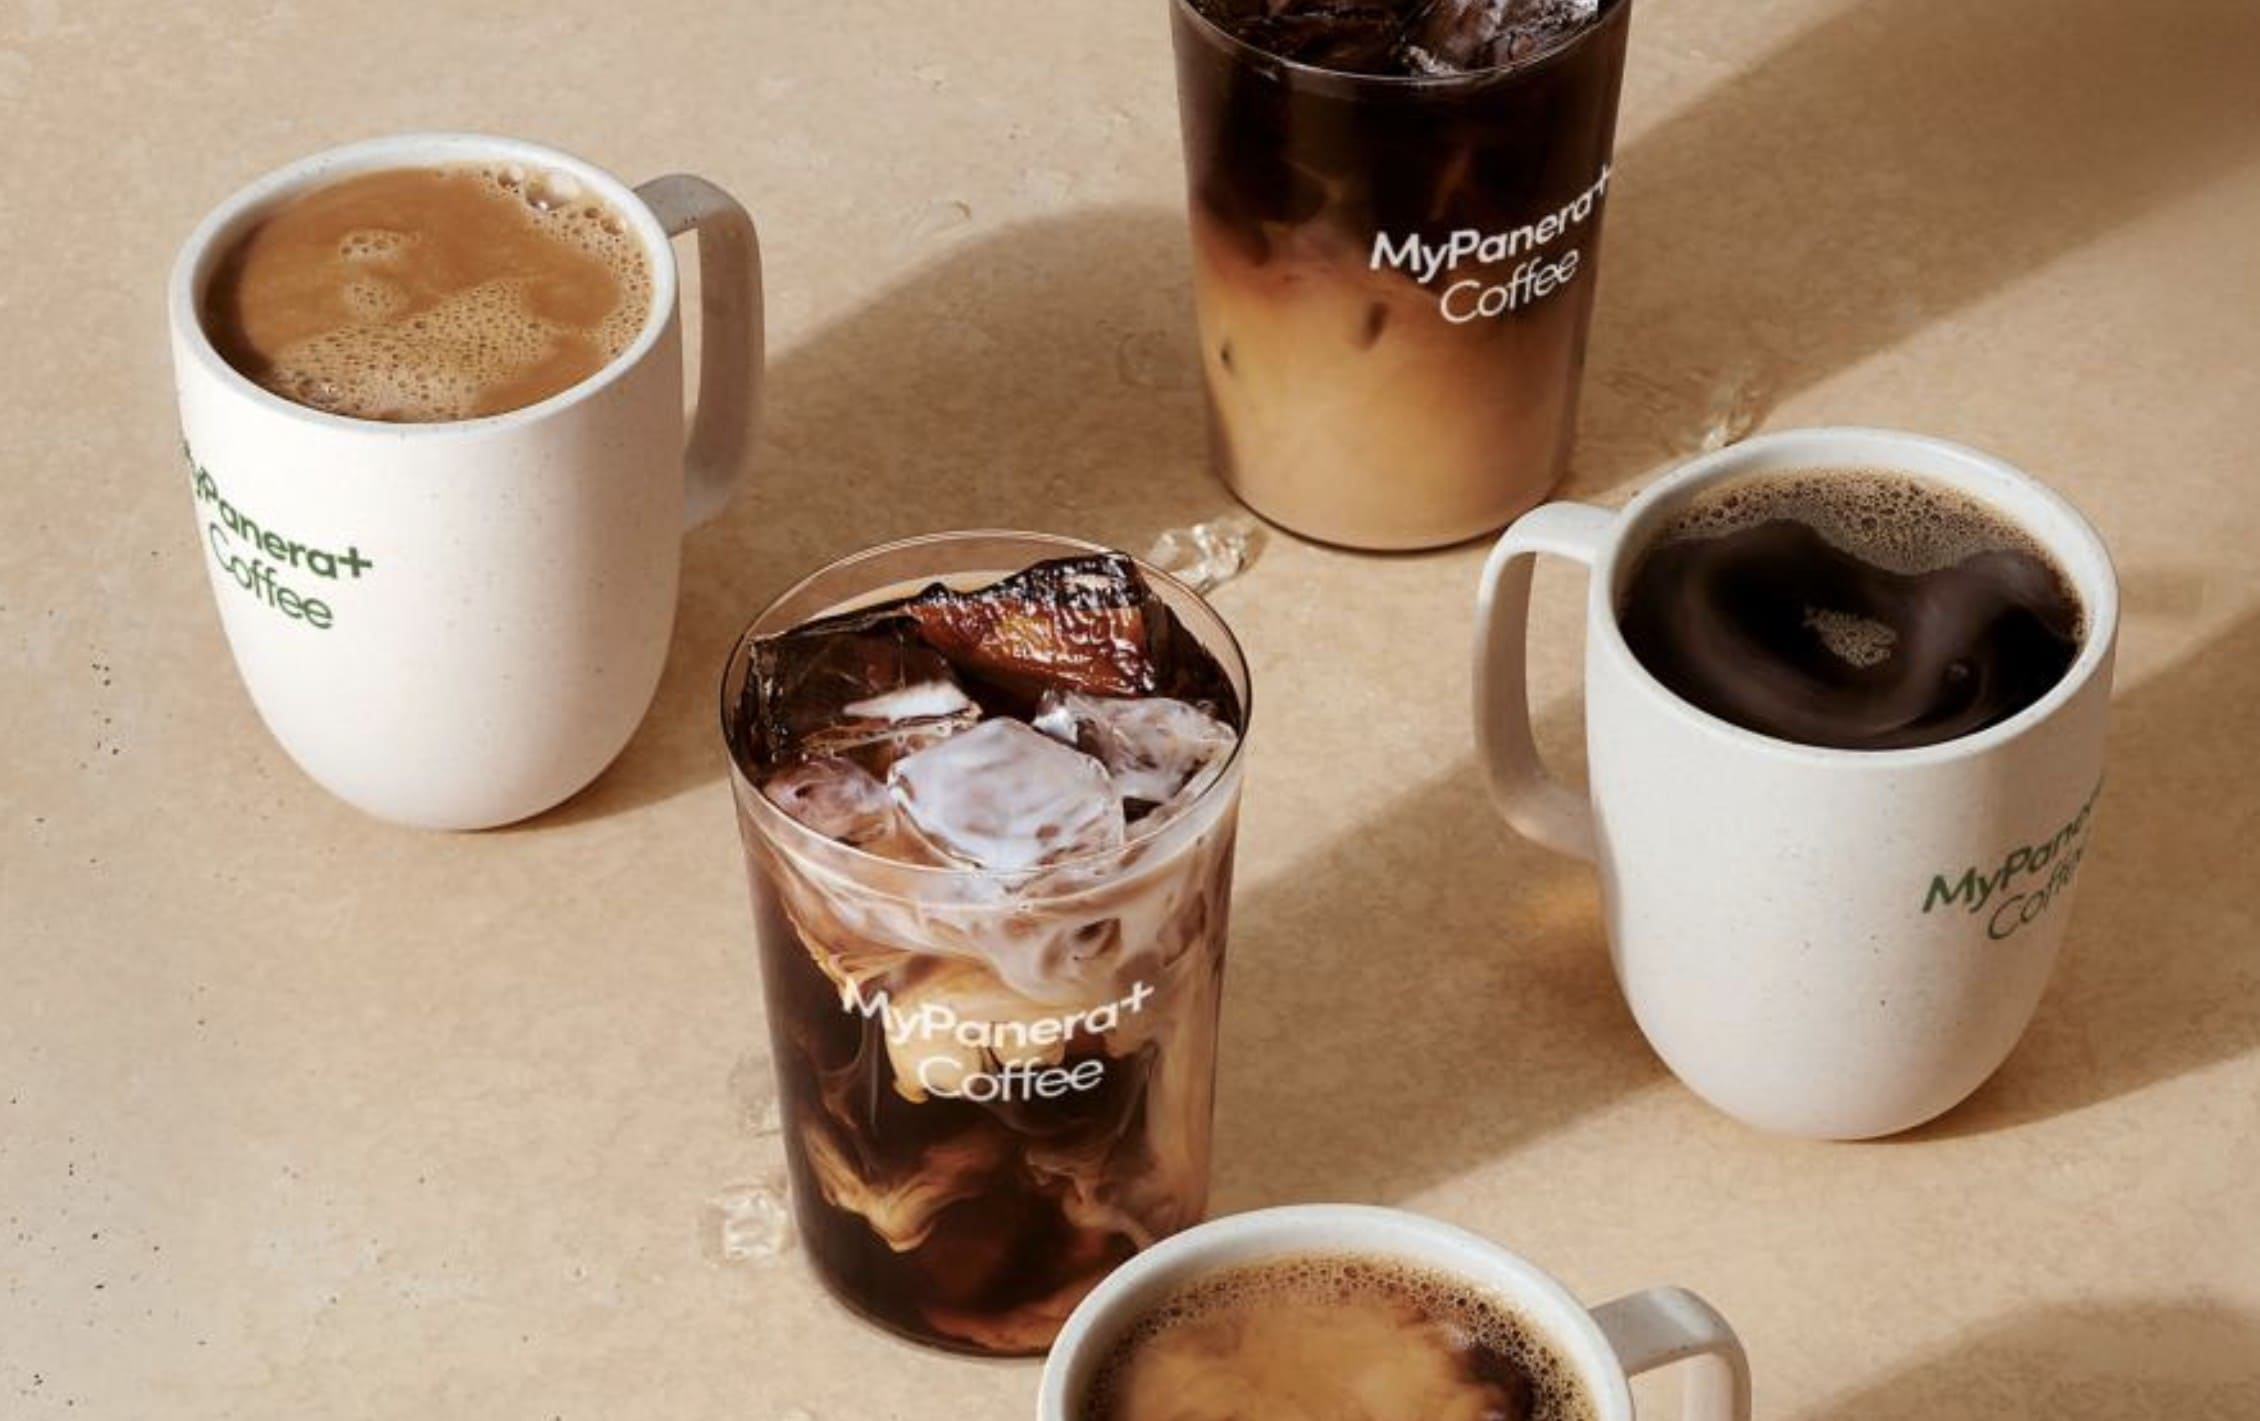 Latest Apple Pay offer will score you 4 months of Panera Bread coffee